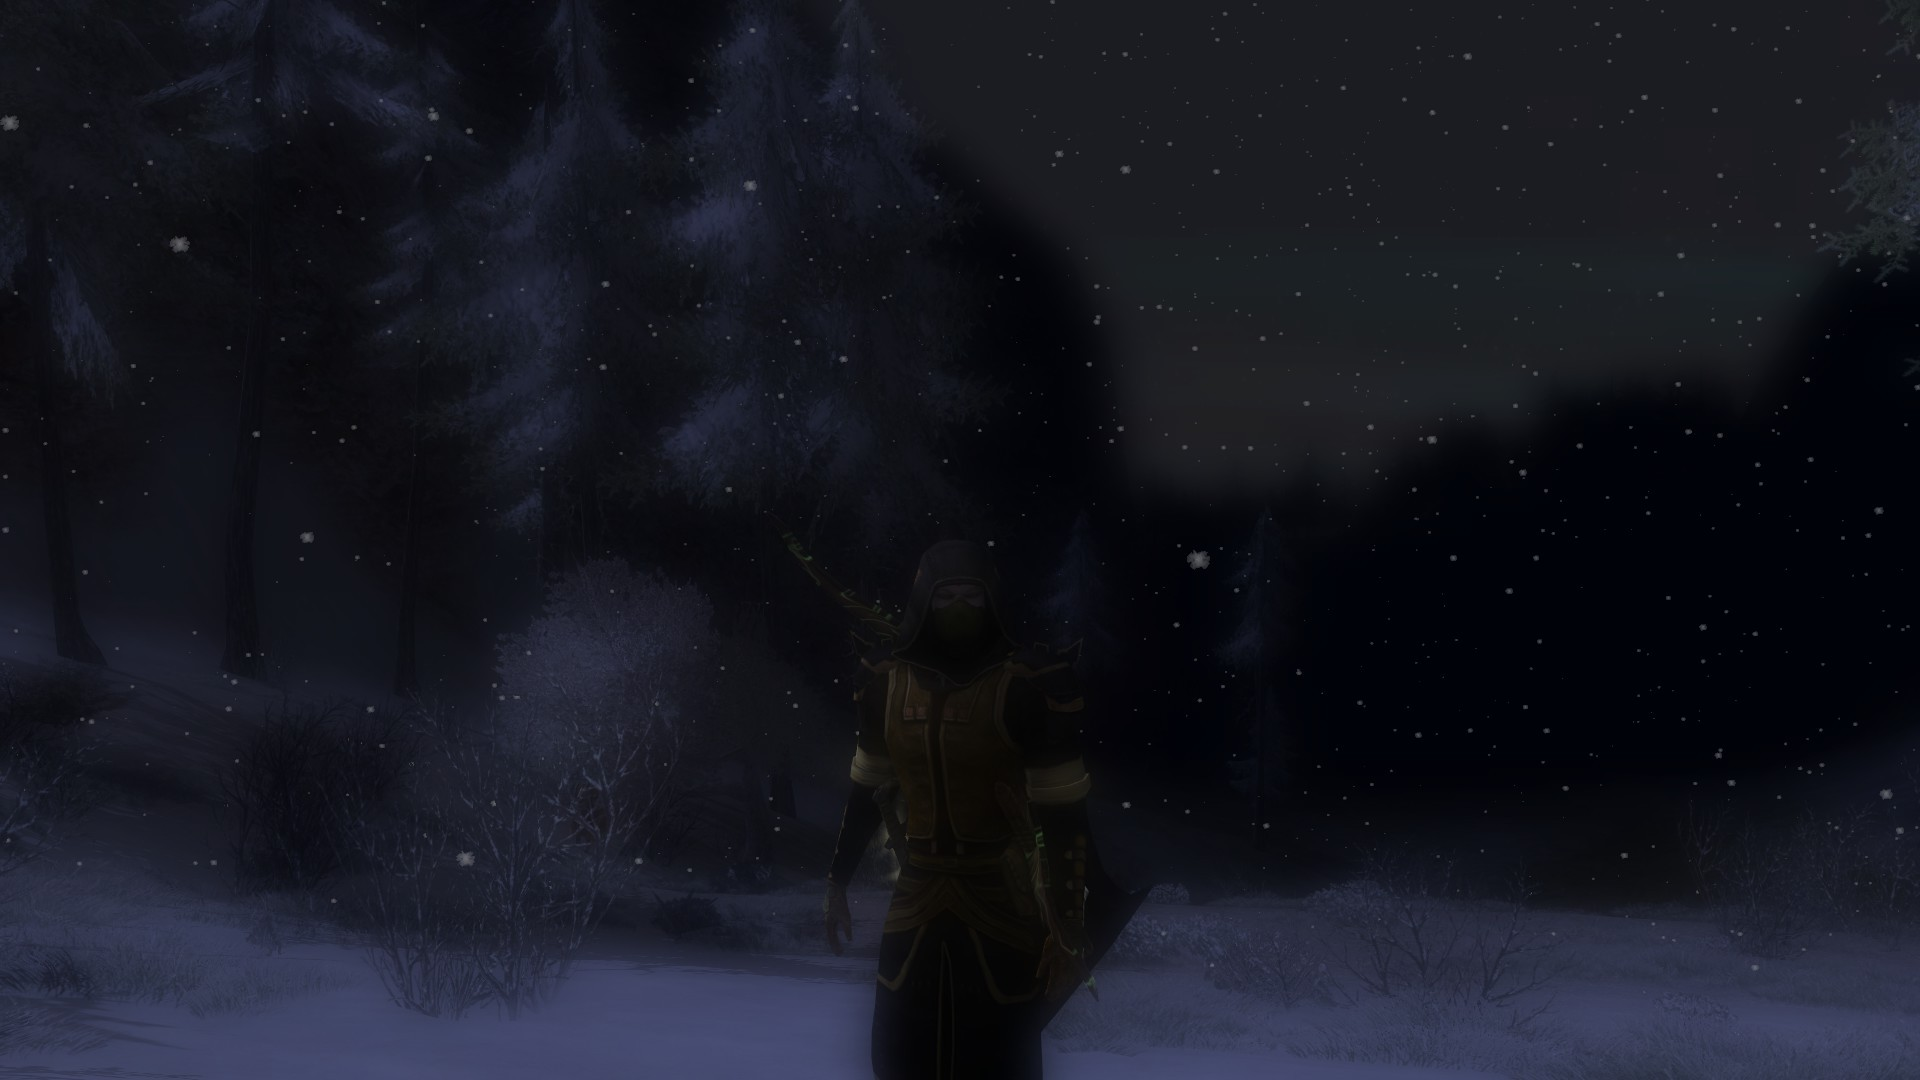 Lord of the Rings Online - A snowy night in Eregion